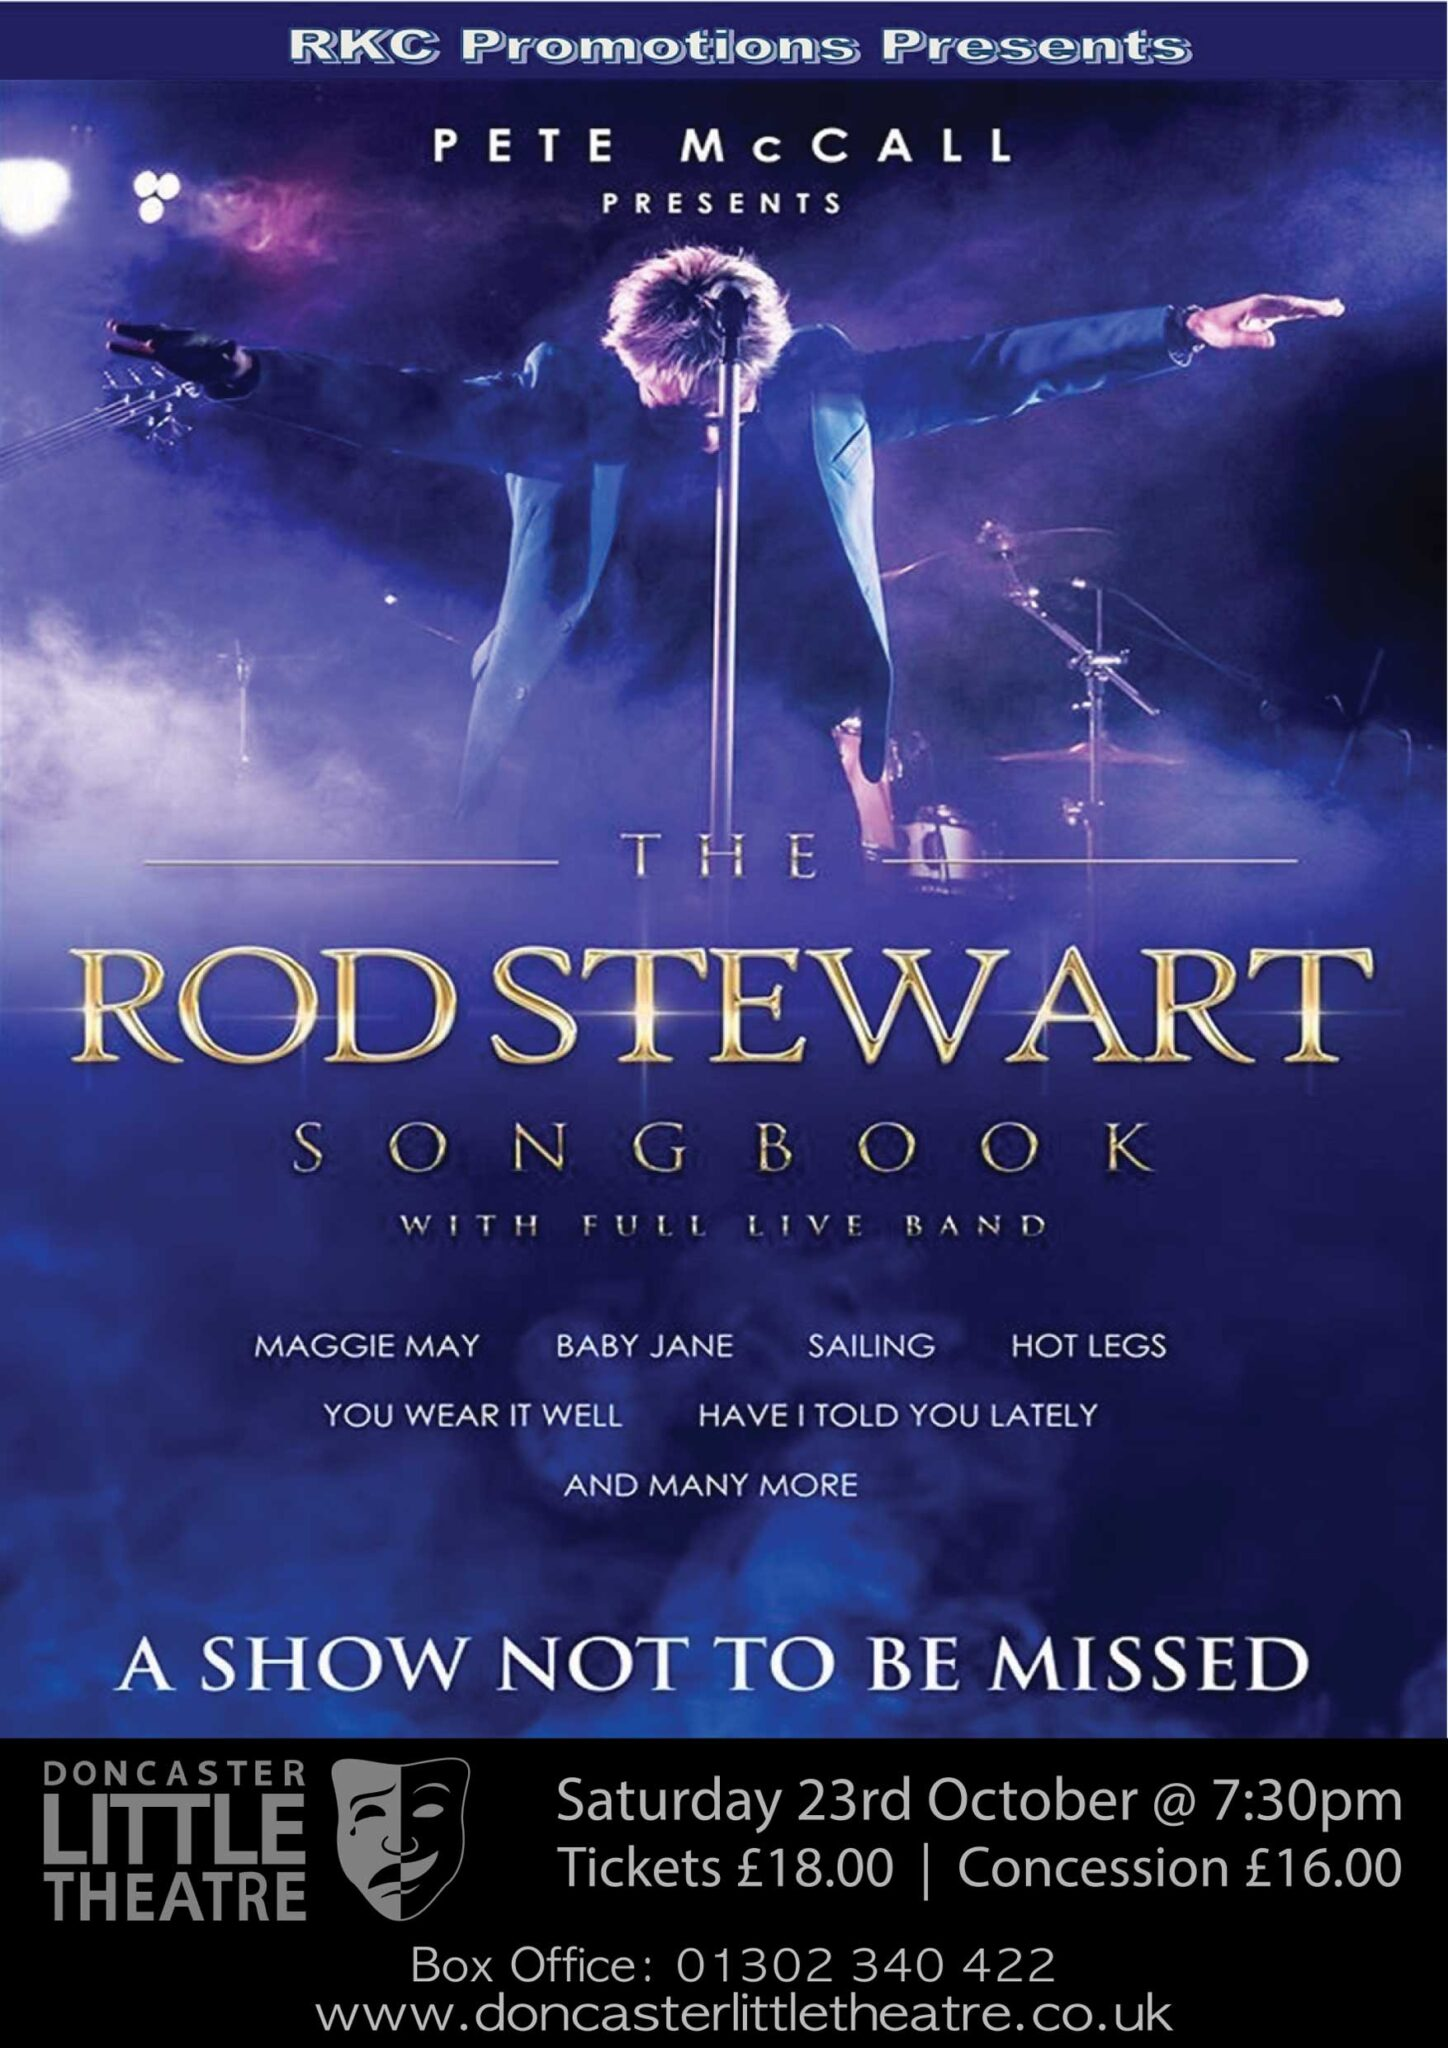 The Rod Stewart Songbook starring Pete McCall